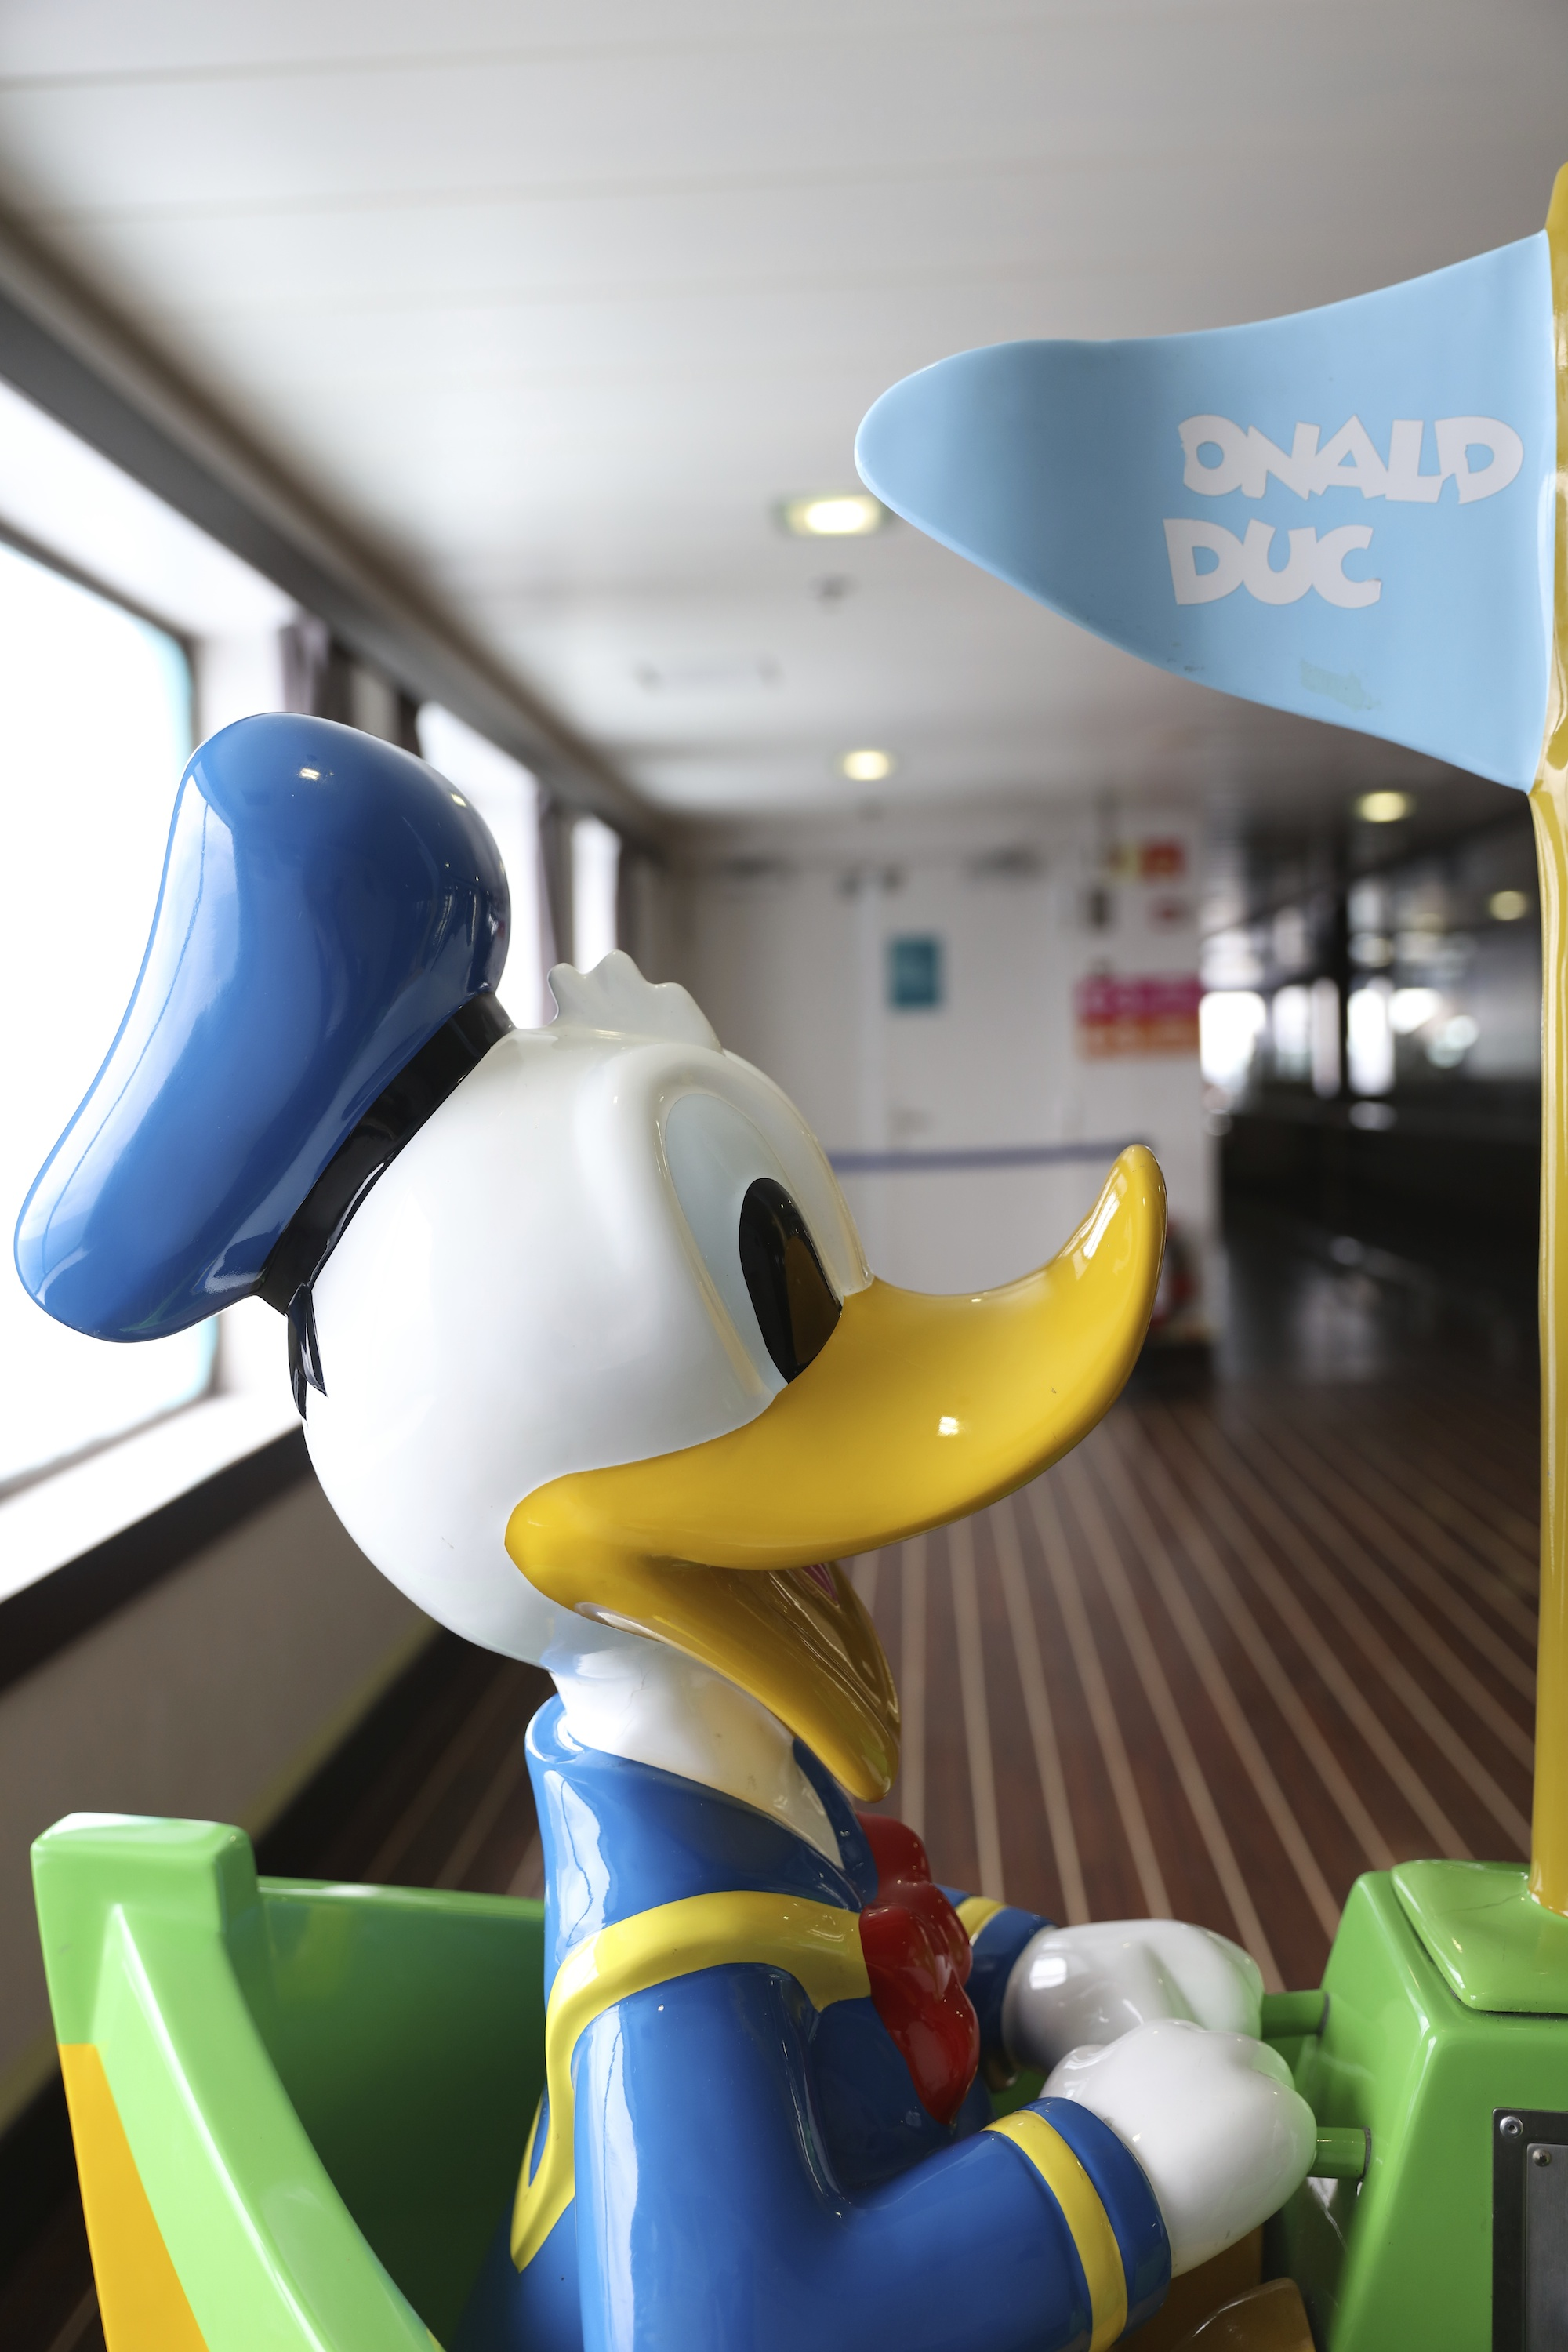 Donald_duck_balaeria